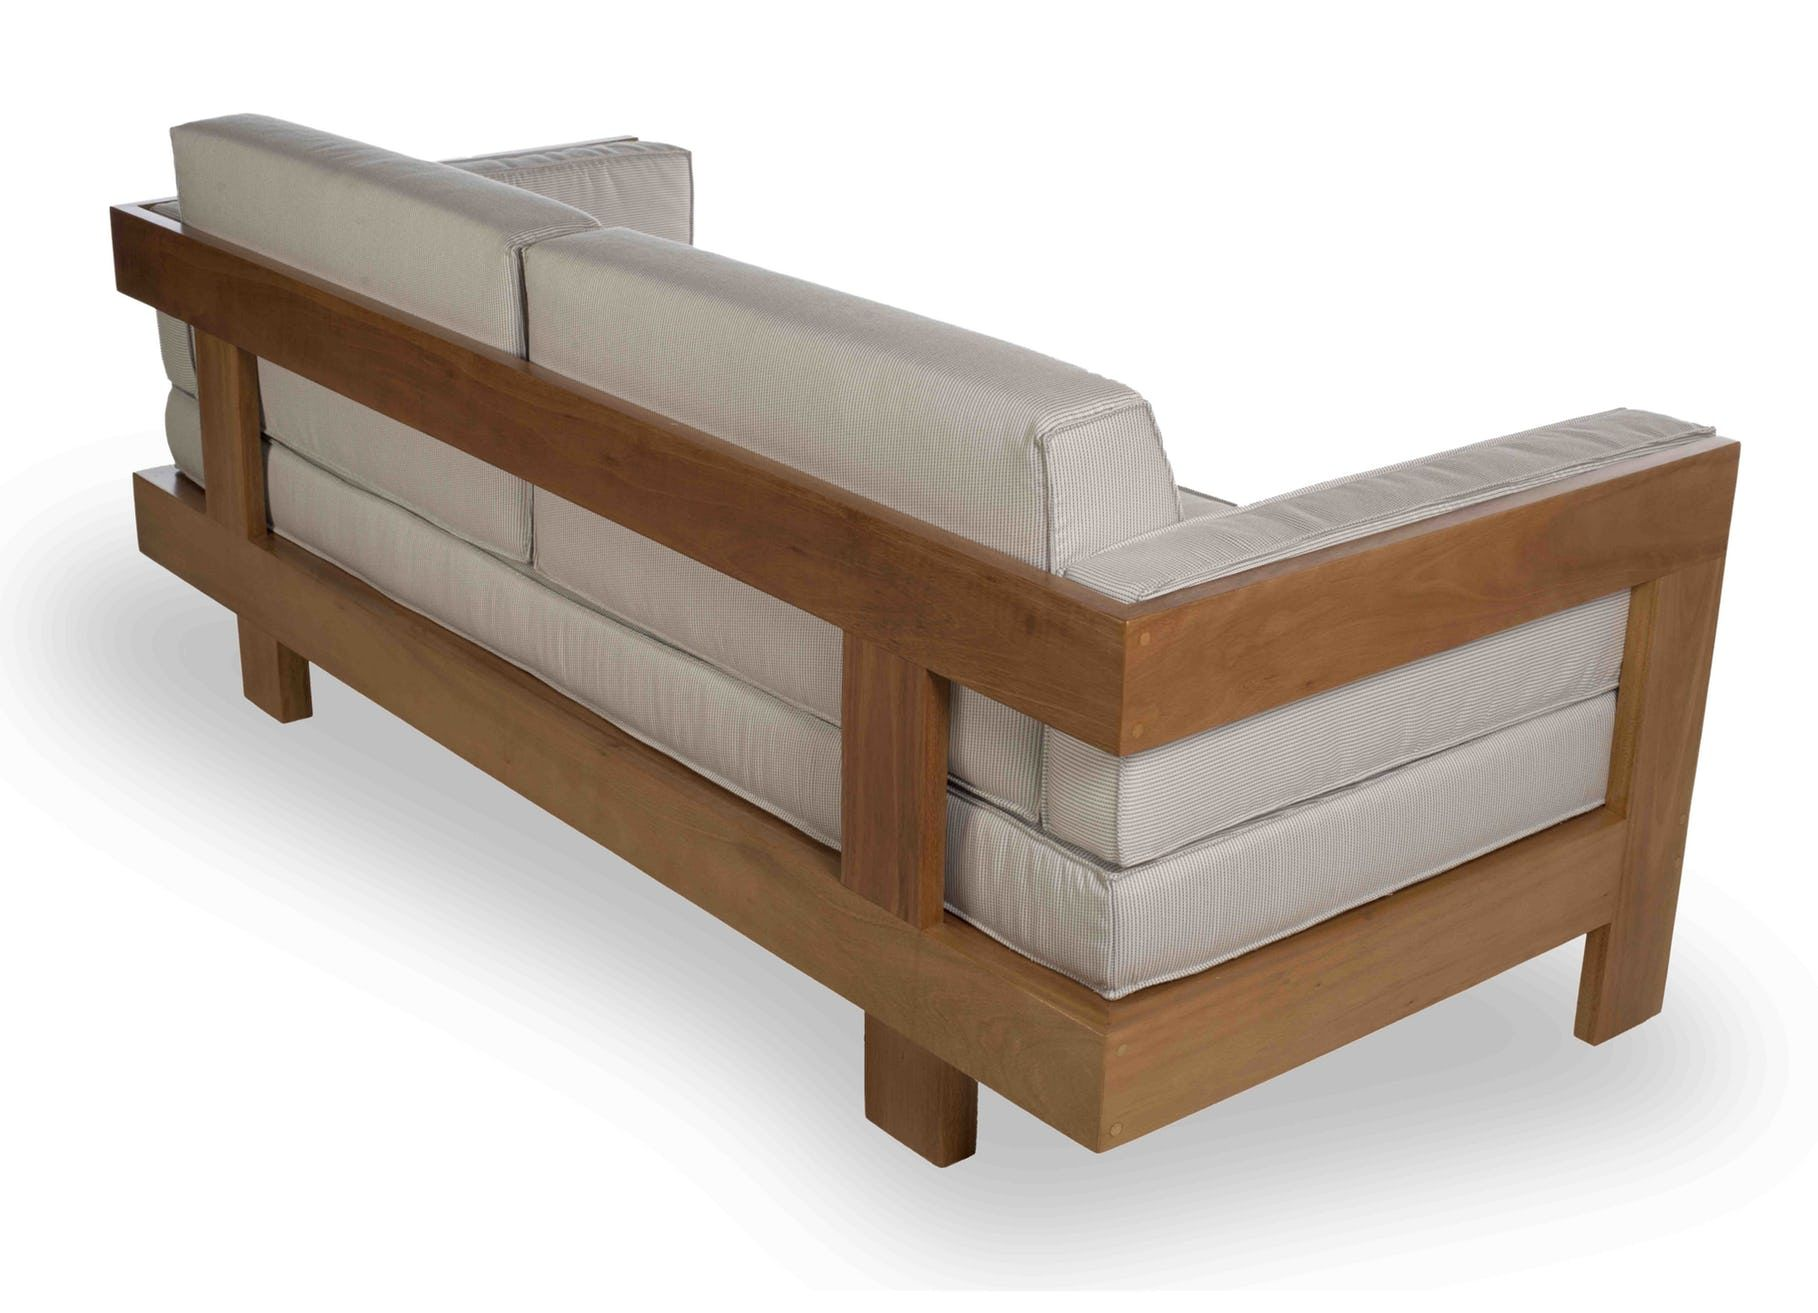 Moorea Living Sofa By Tidelli Now Available At Haute Living In 2020 Wooden Sofa Designs Wooden Sofa Set Designs Wooden Sofa